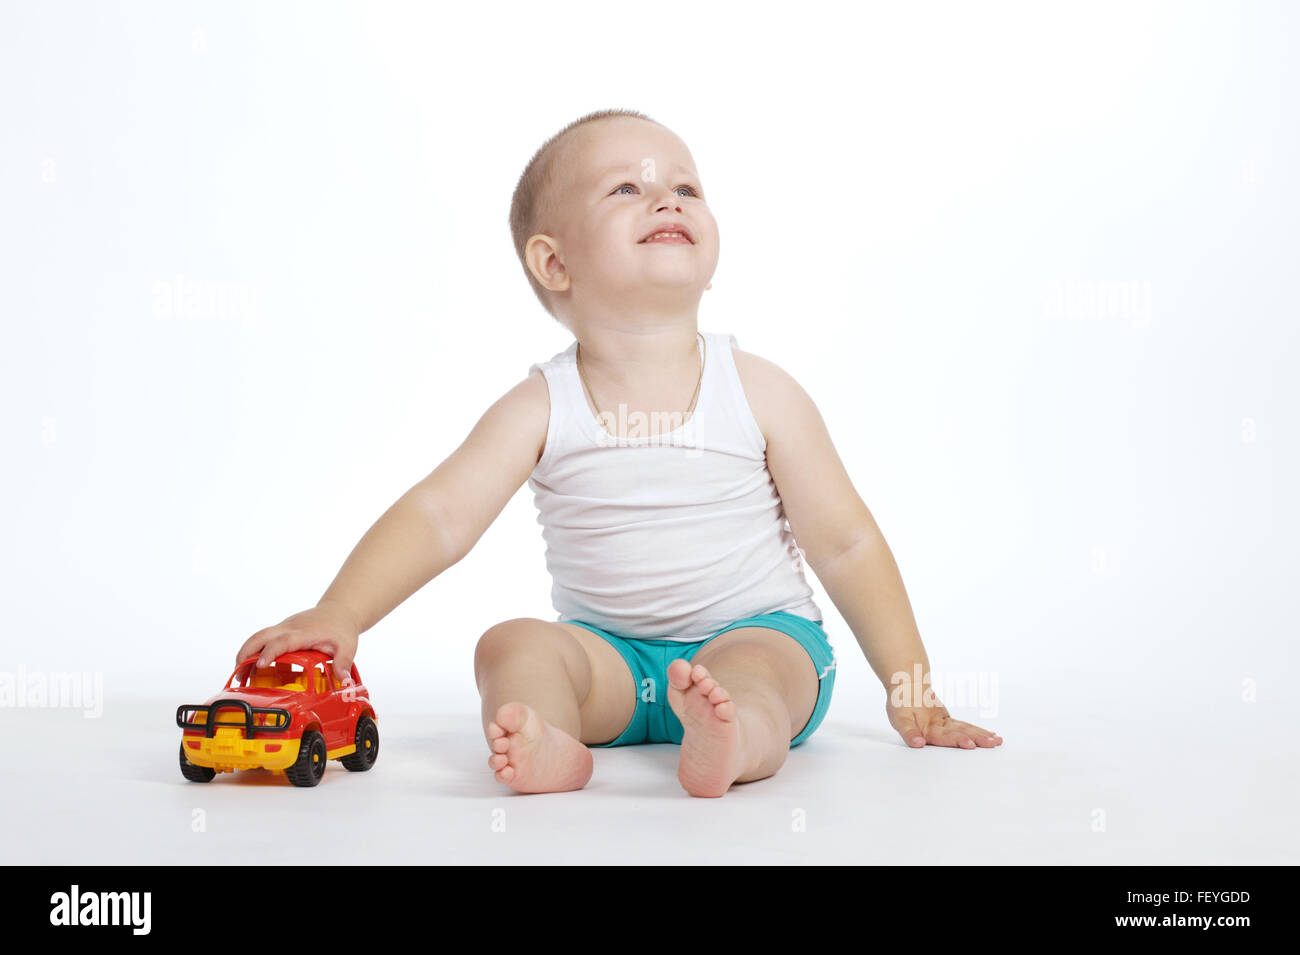 Little Boy With Toy Car : Little boy plays with toy car stock photo royalty free